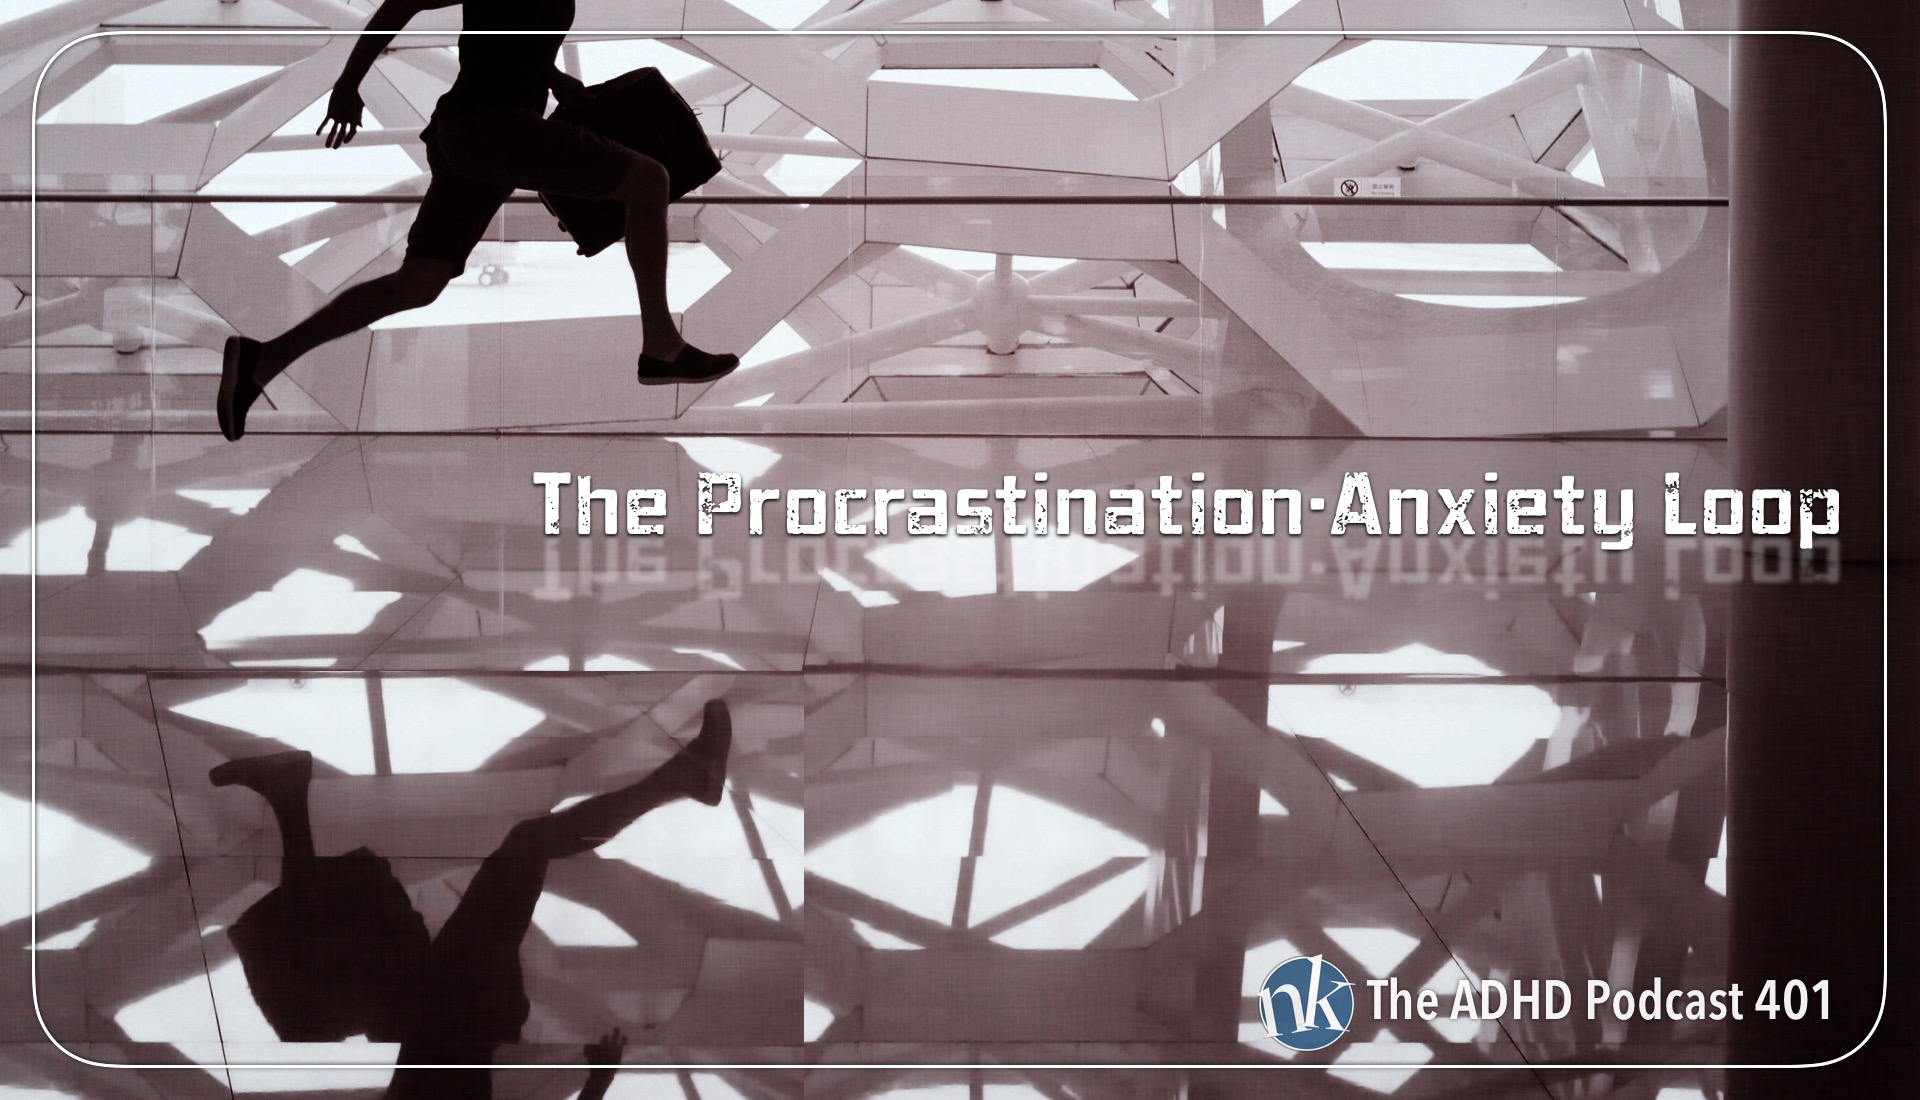 The Procrastination-Anxiety Loop on The ADHD Podcast